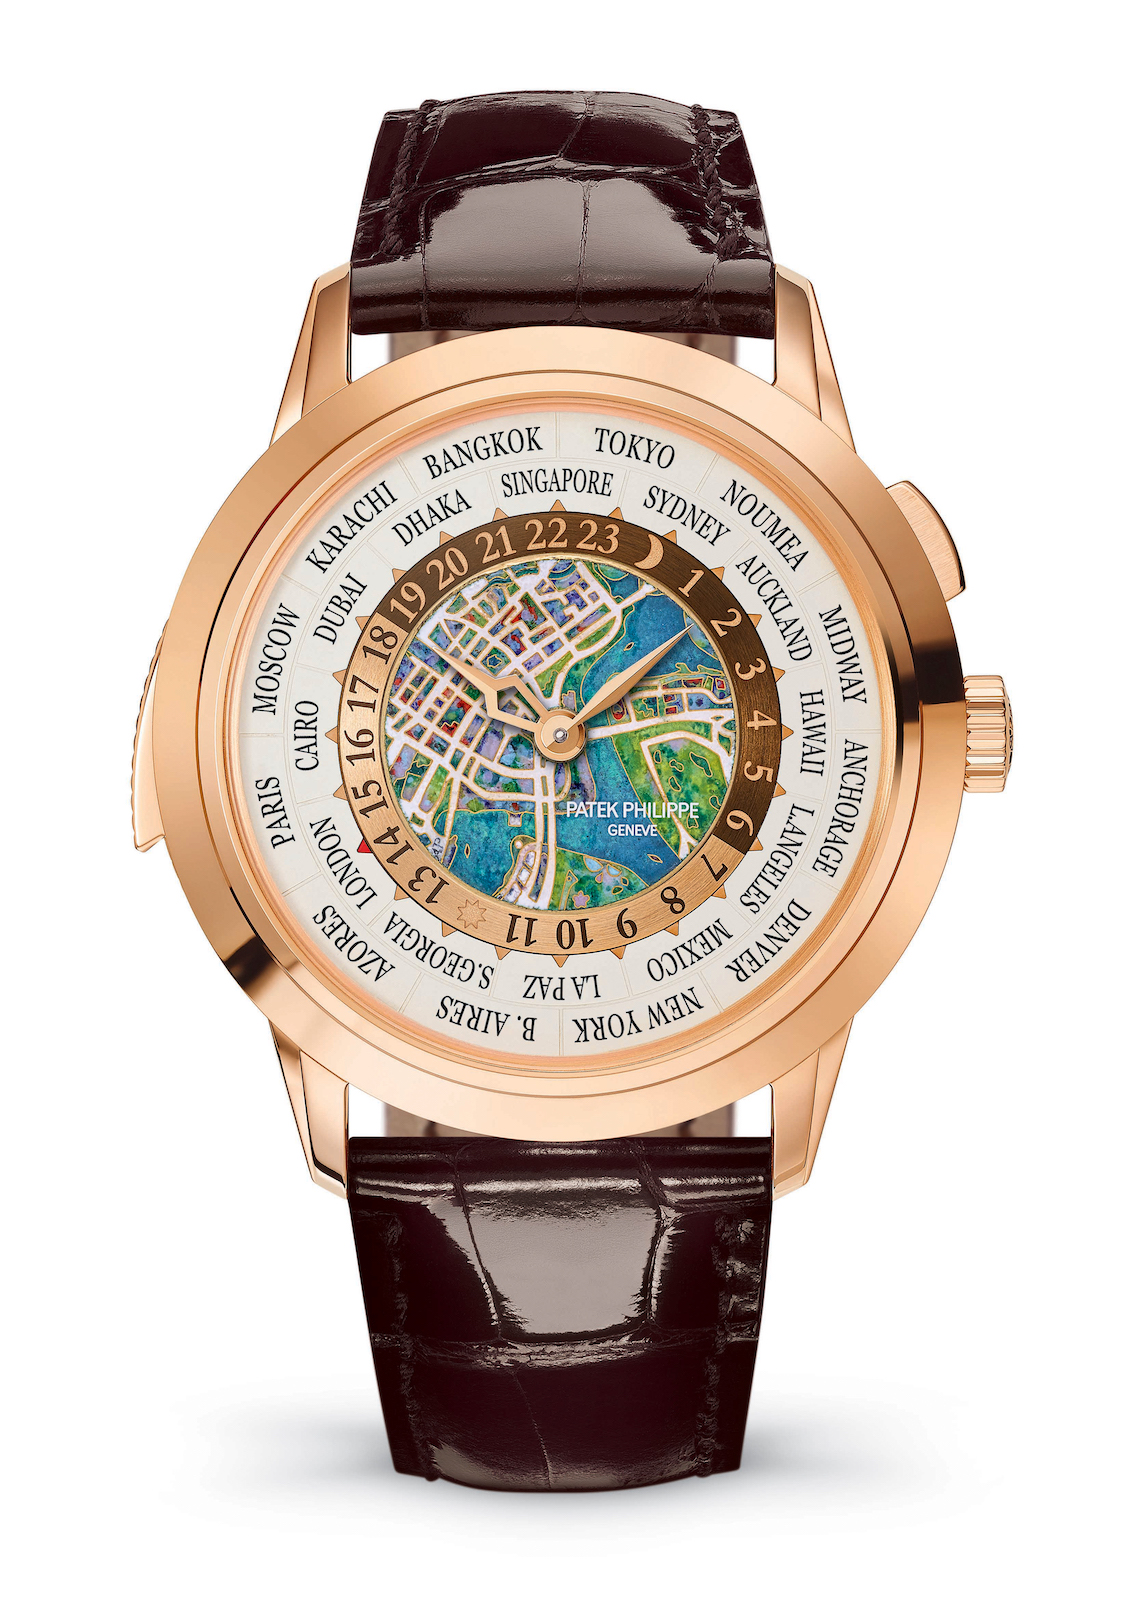 Patek Philippe Singapore 2019 Special Editions - 5531R-013 - front